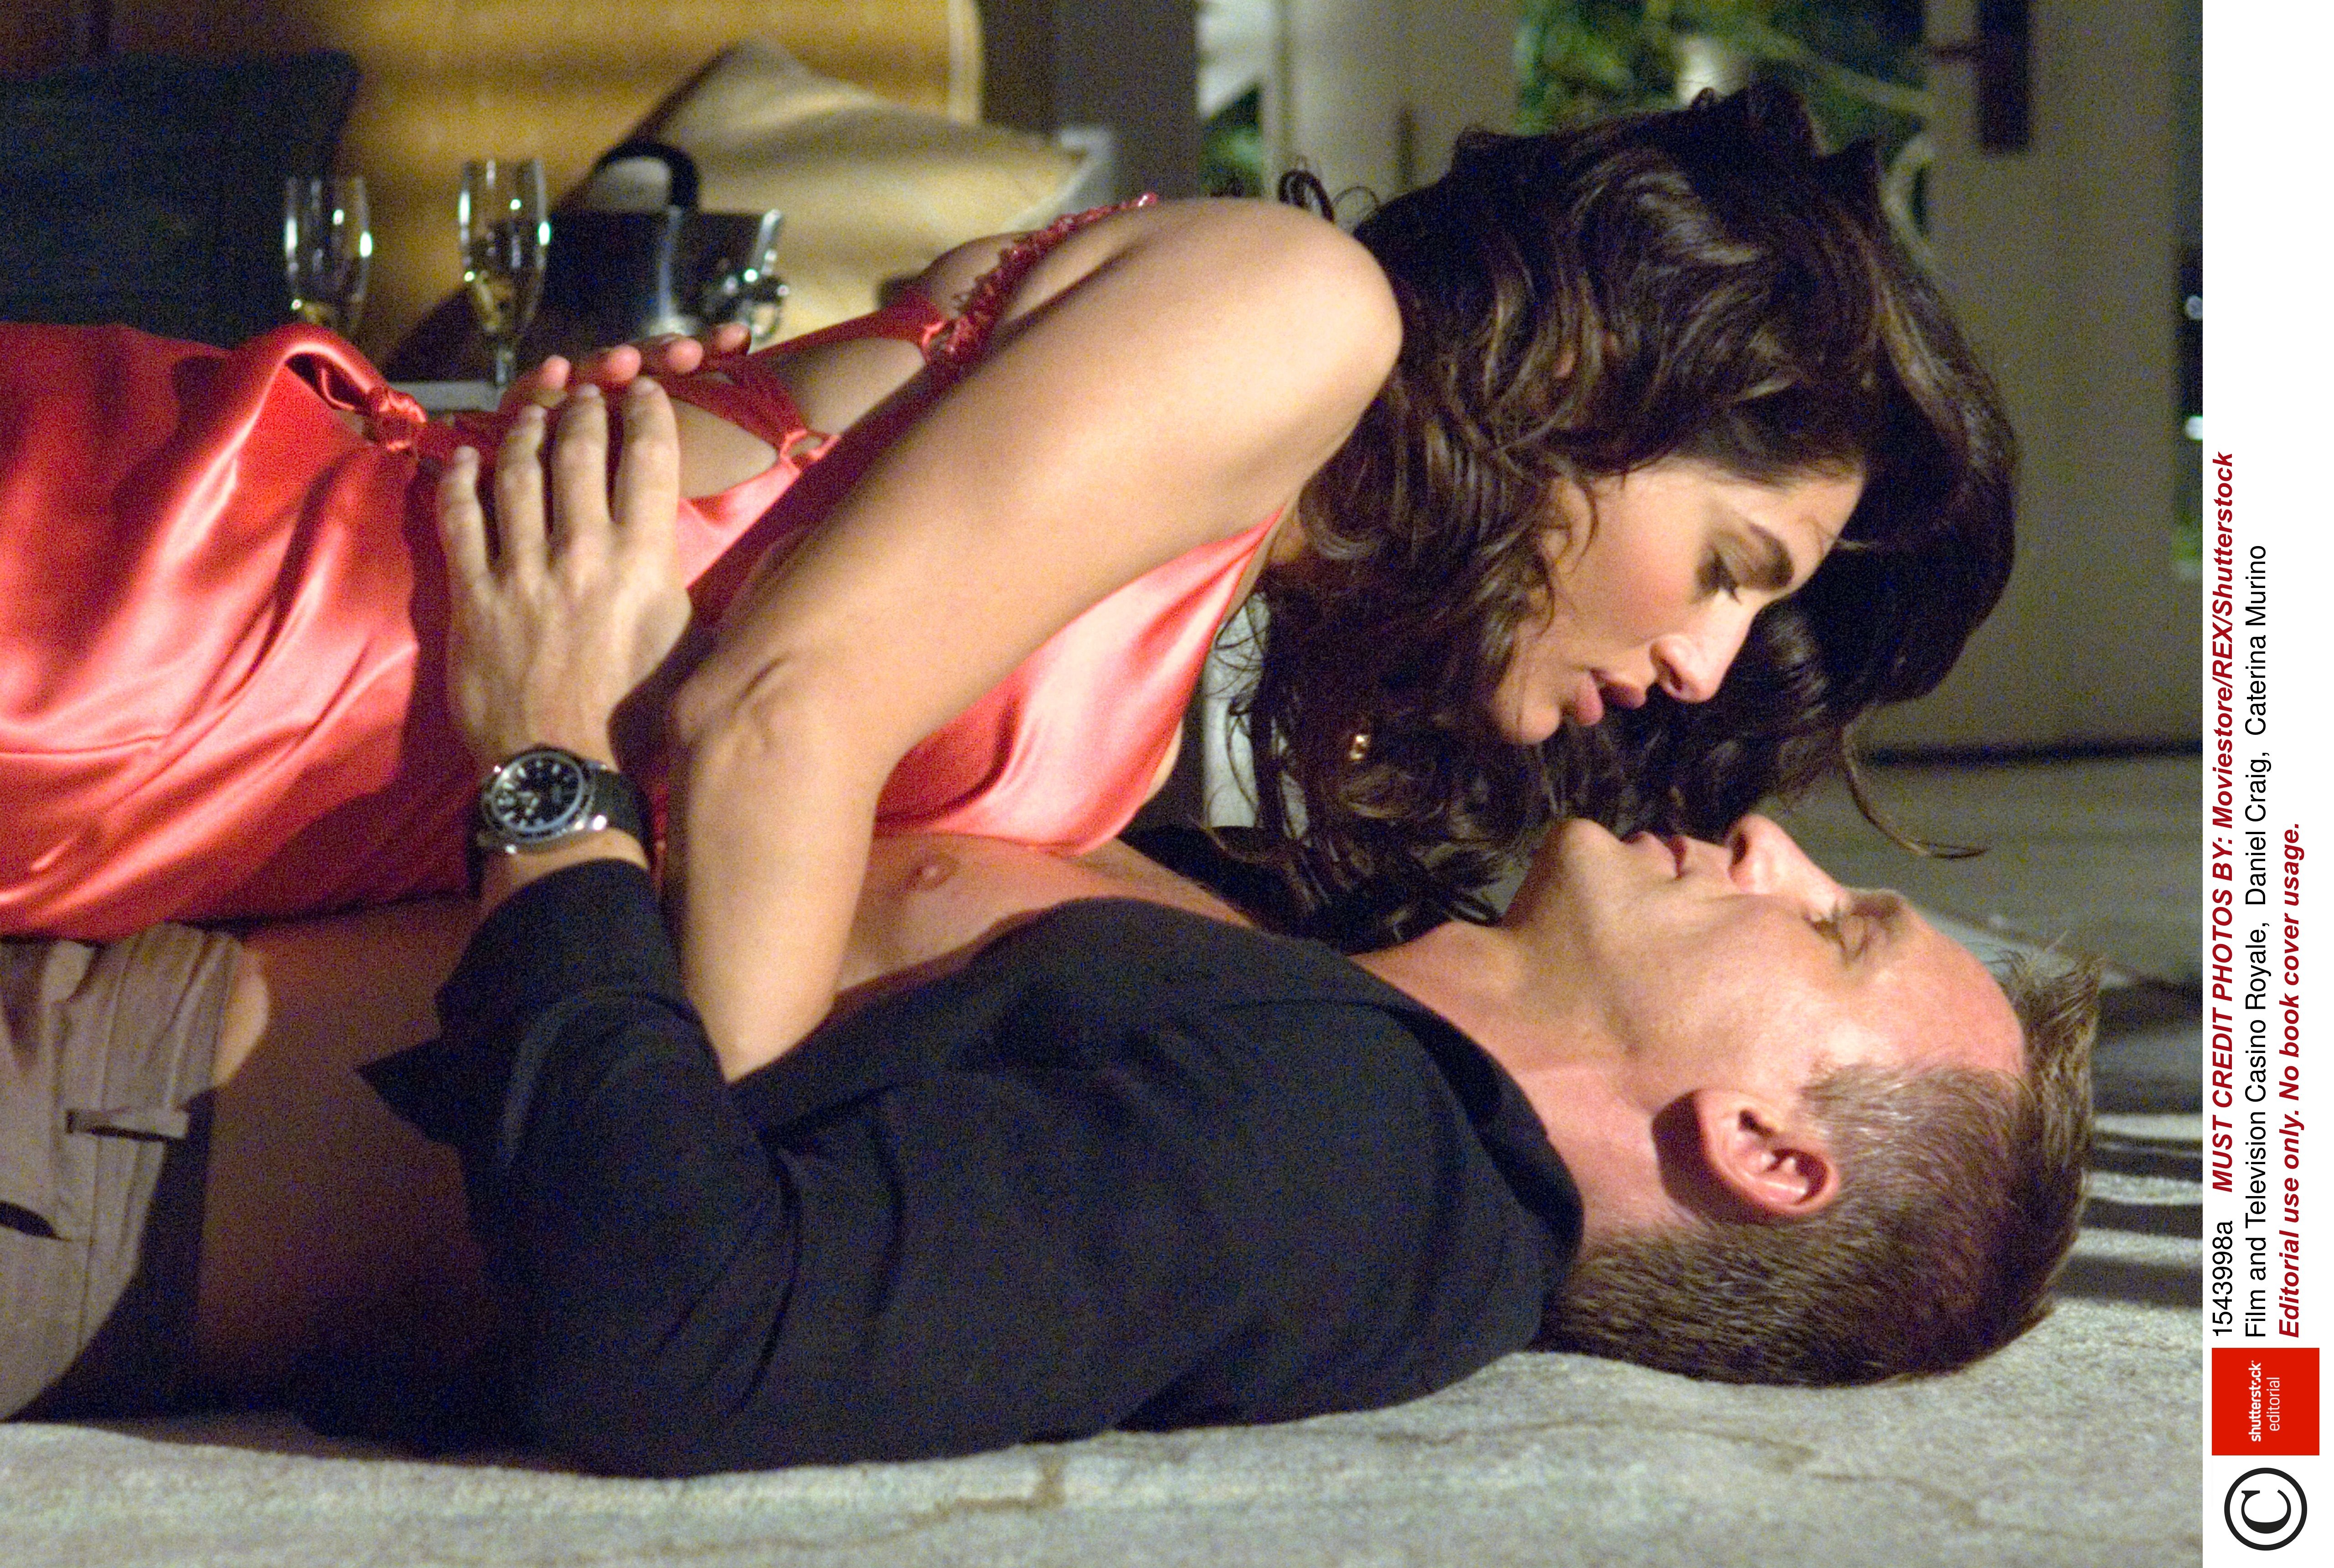 Lot 29 - Casino Royale / Caterina Murino: A screen-used pink satin dress worn by Caterina Murino for her r...